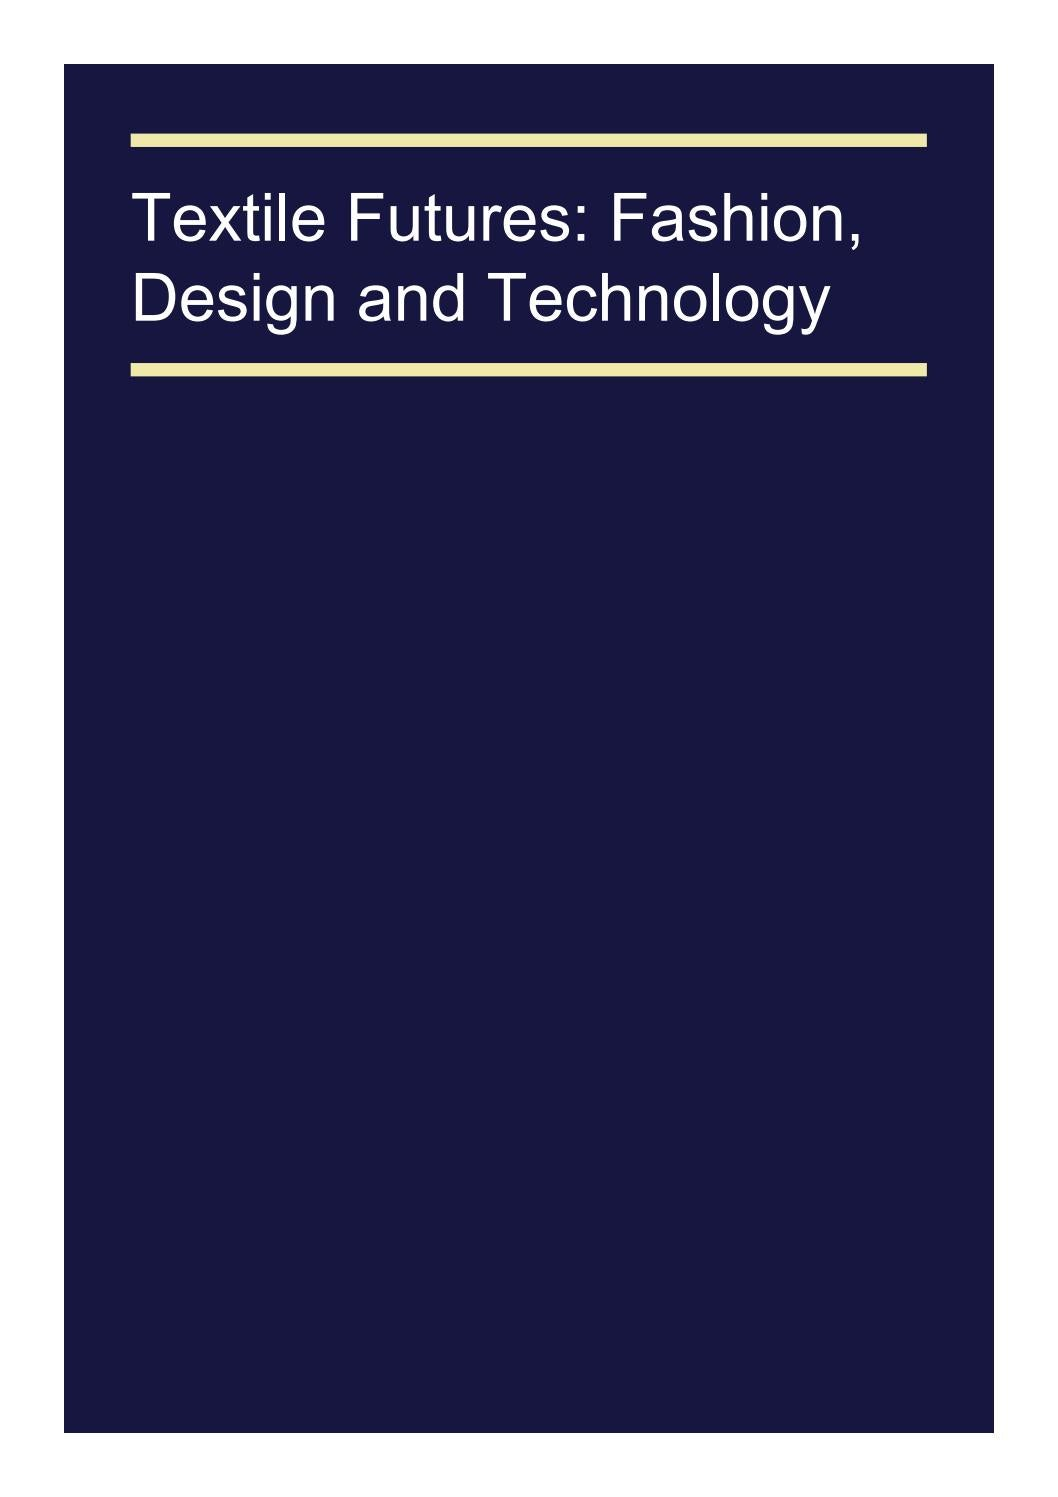 Download Textile Futures Fashion Design And Technology Read Online By Getshaw23572 Issuu